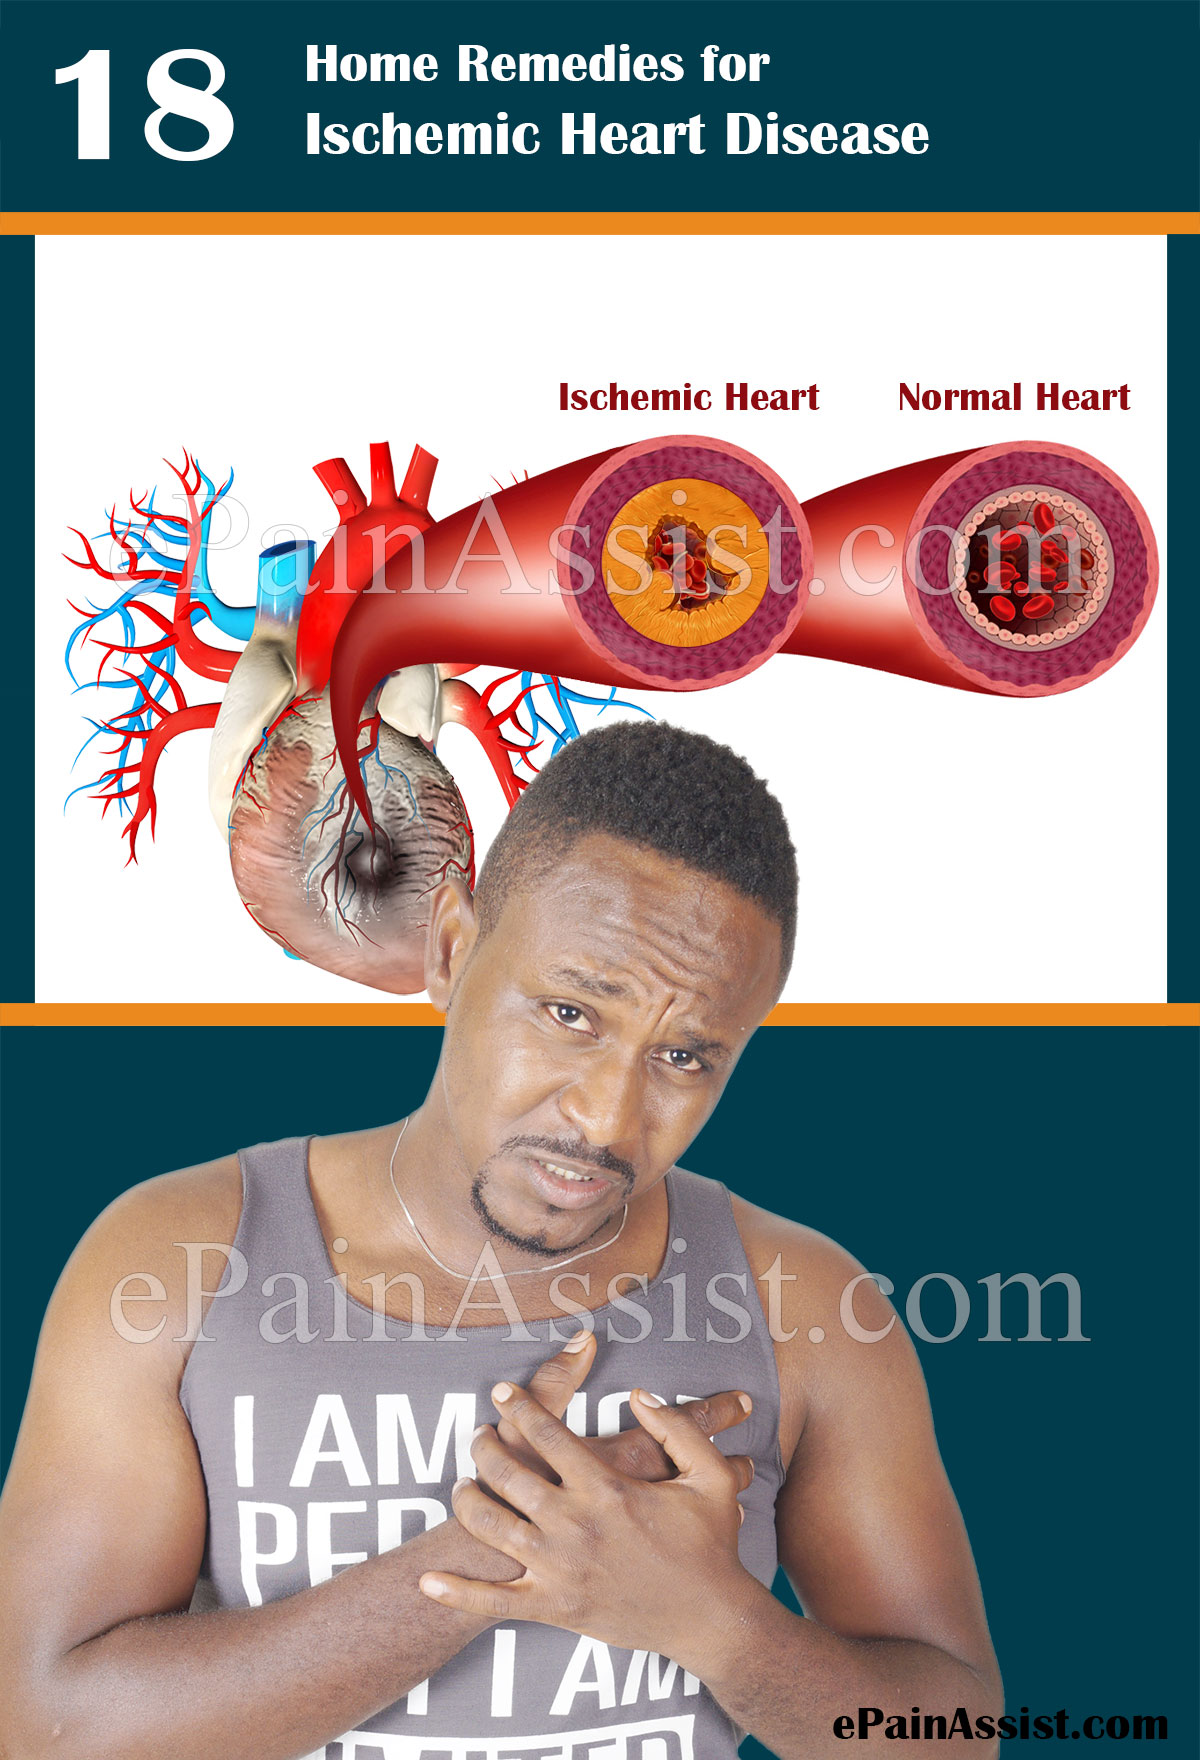 Home Remedies for Ischemic Heart Disease